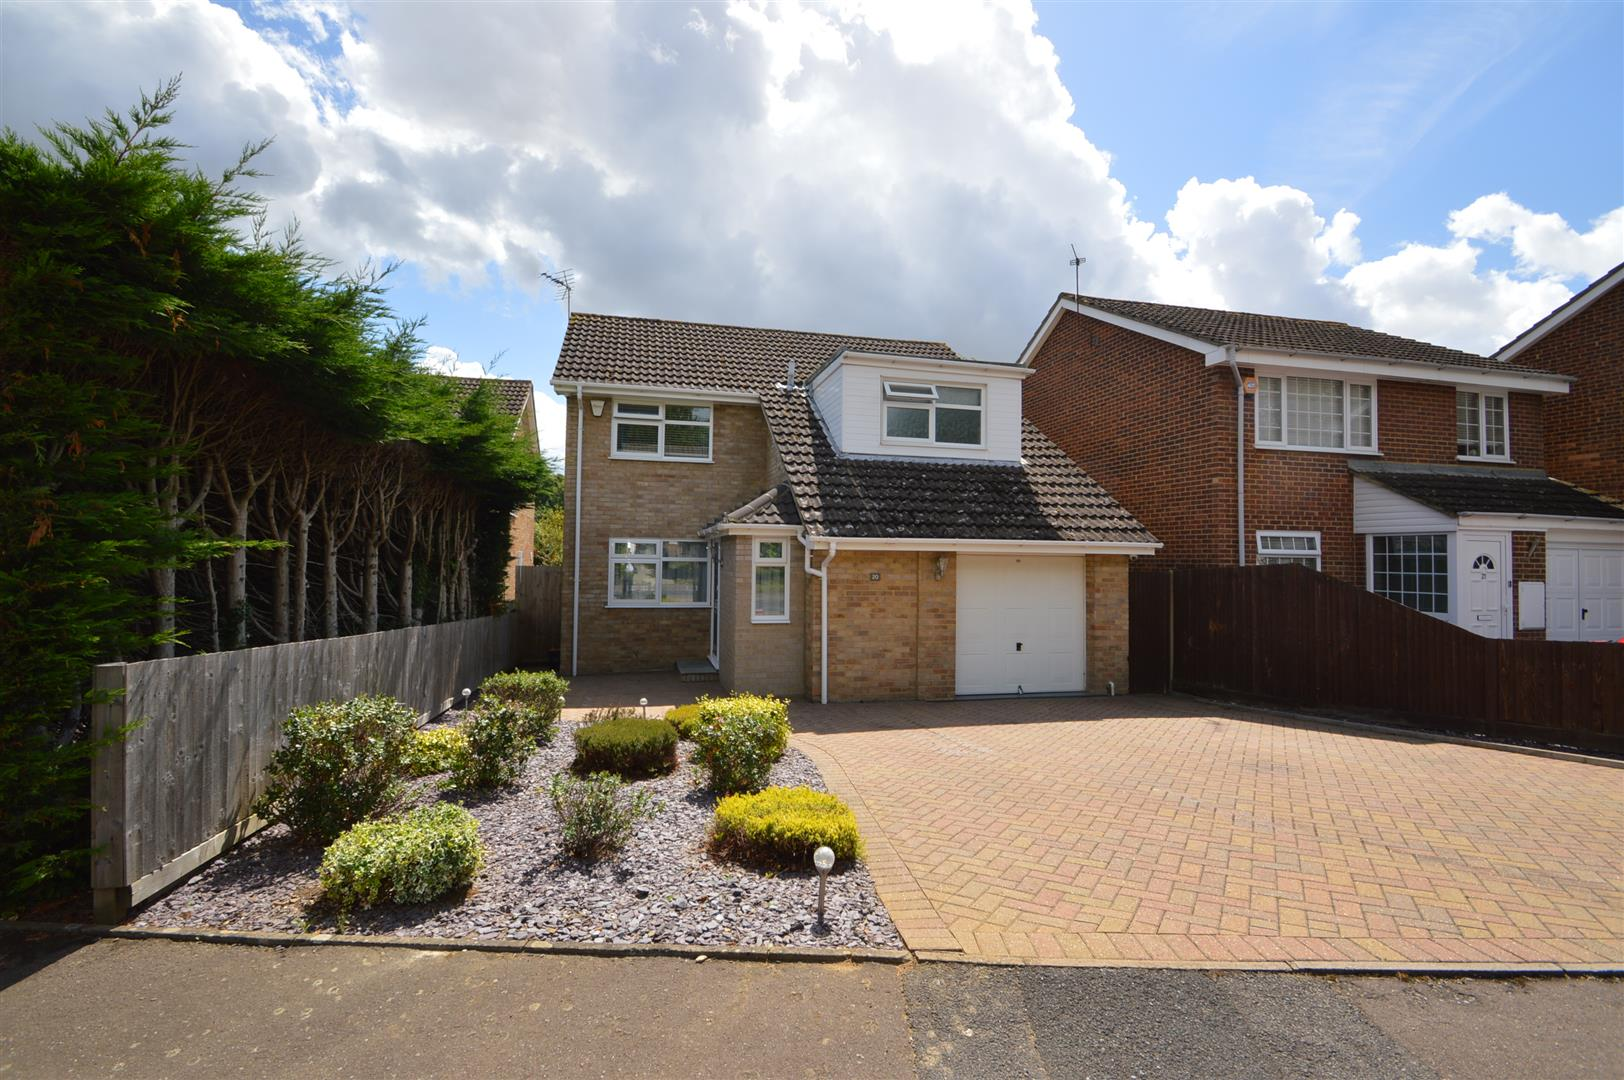 3 Bedrooms Detached House for sale in Weyhill Close, Maidstone